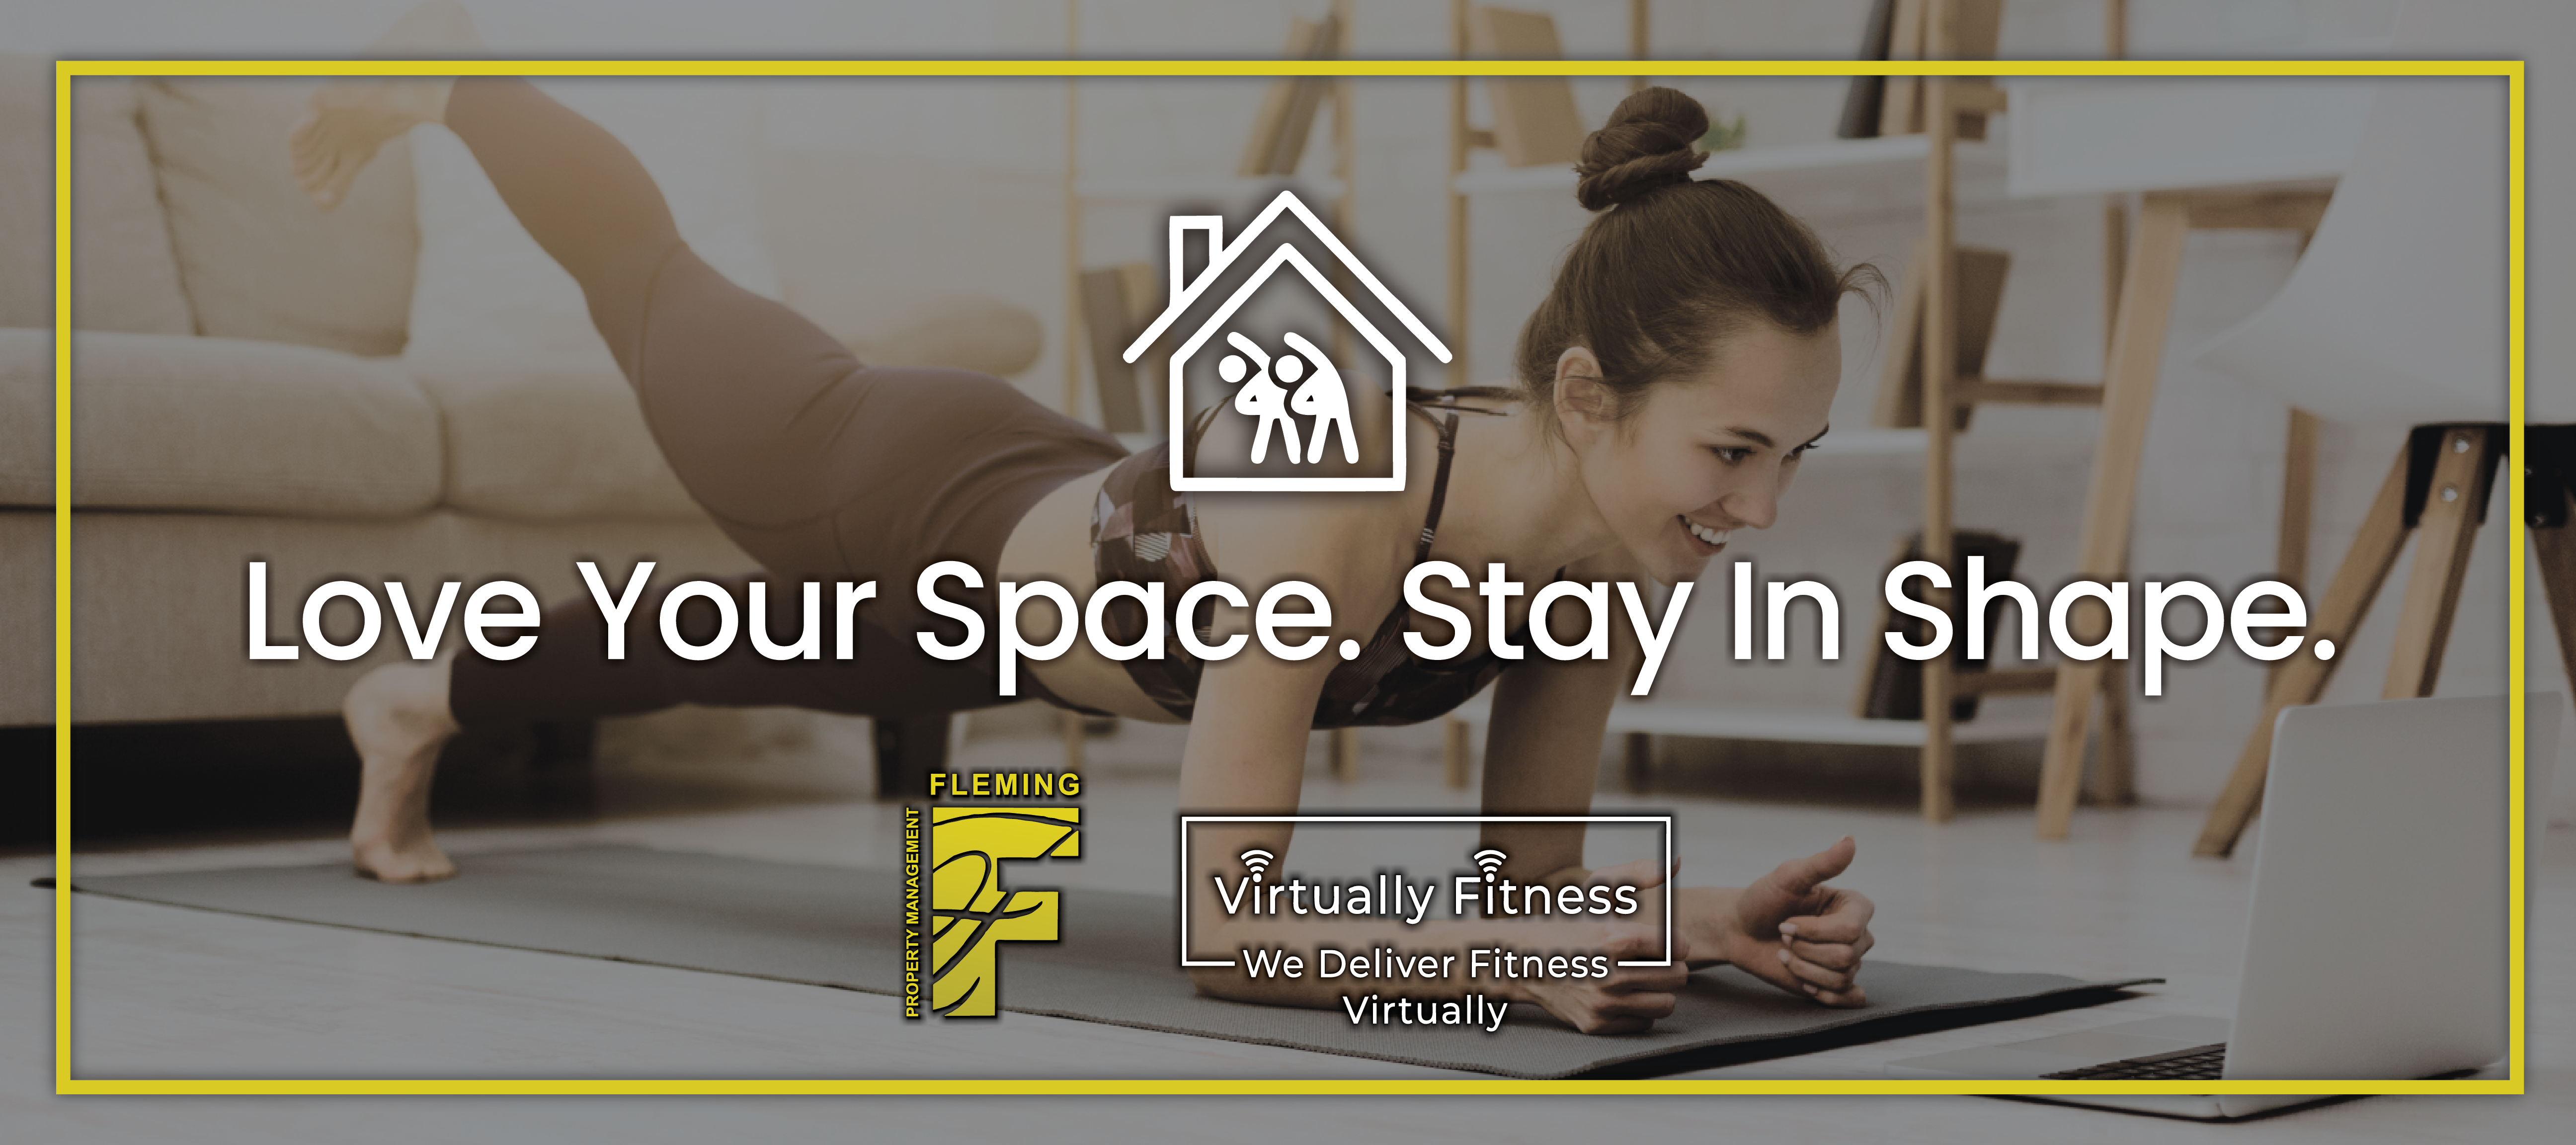 virtual Fitness page banner